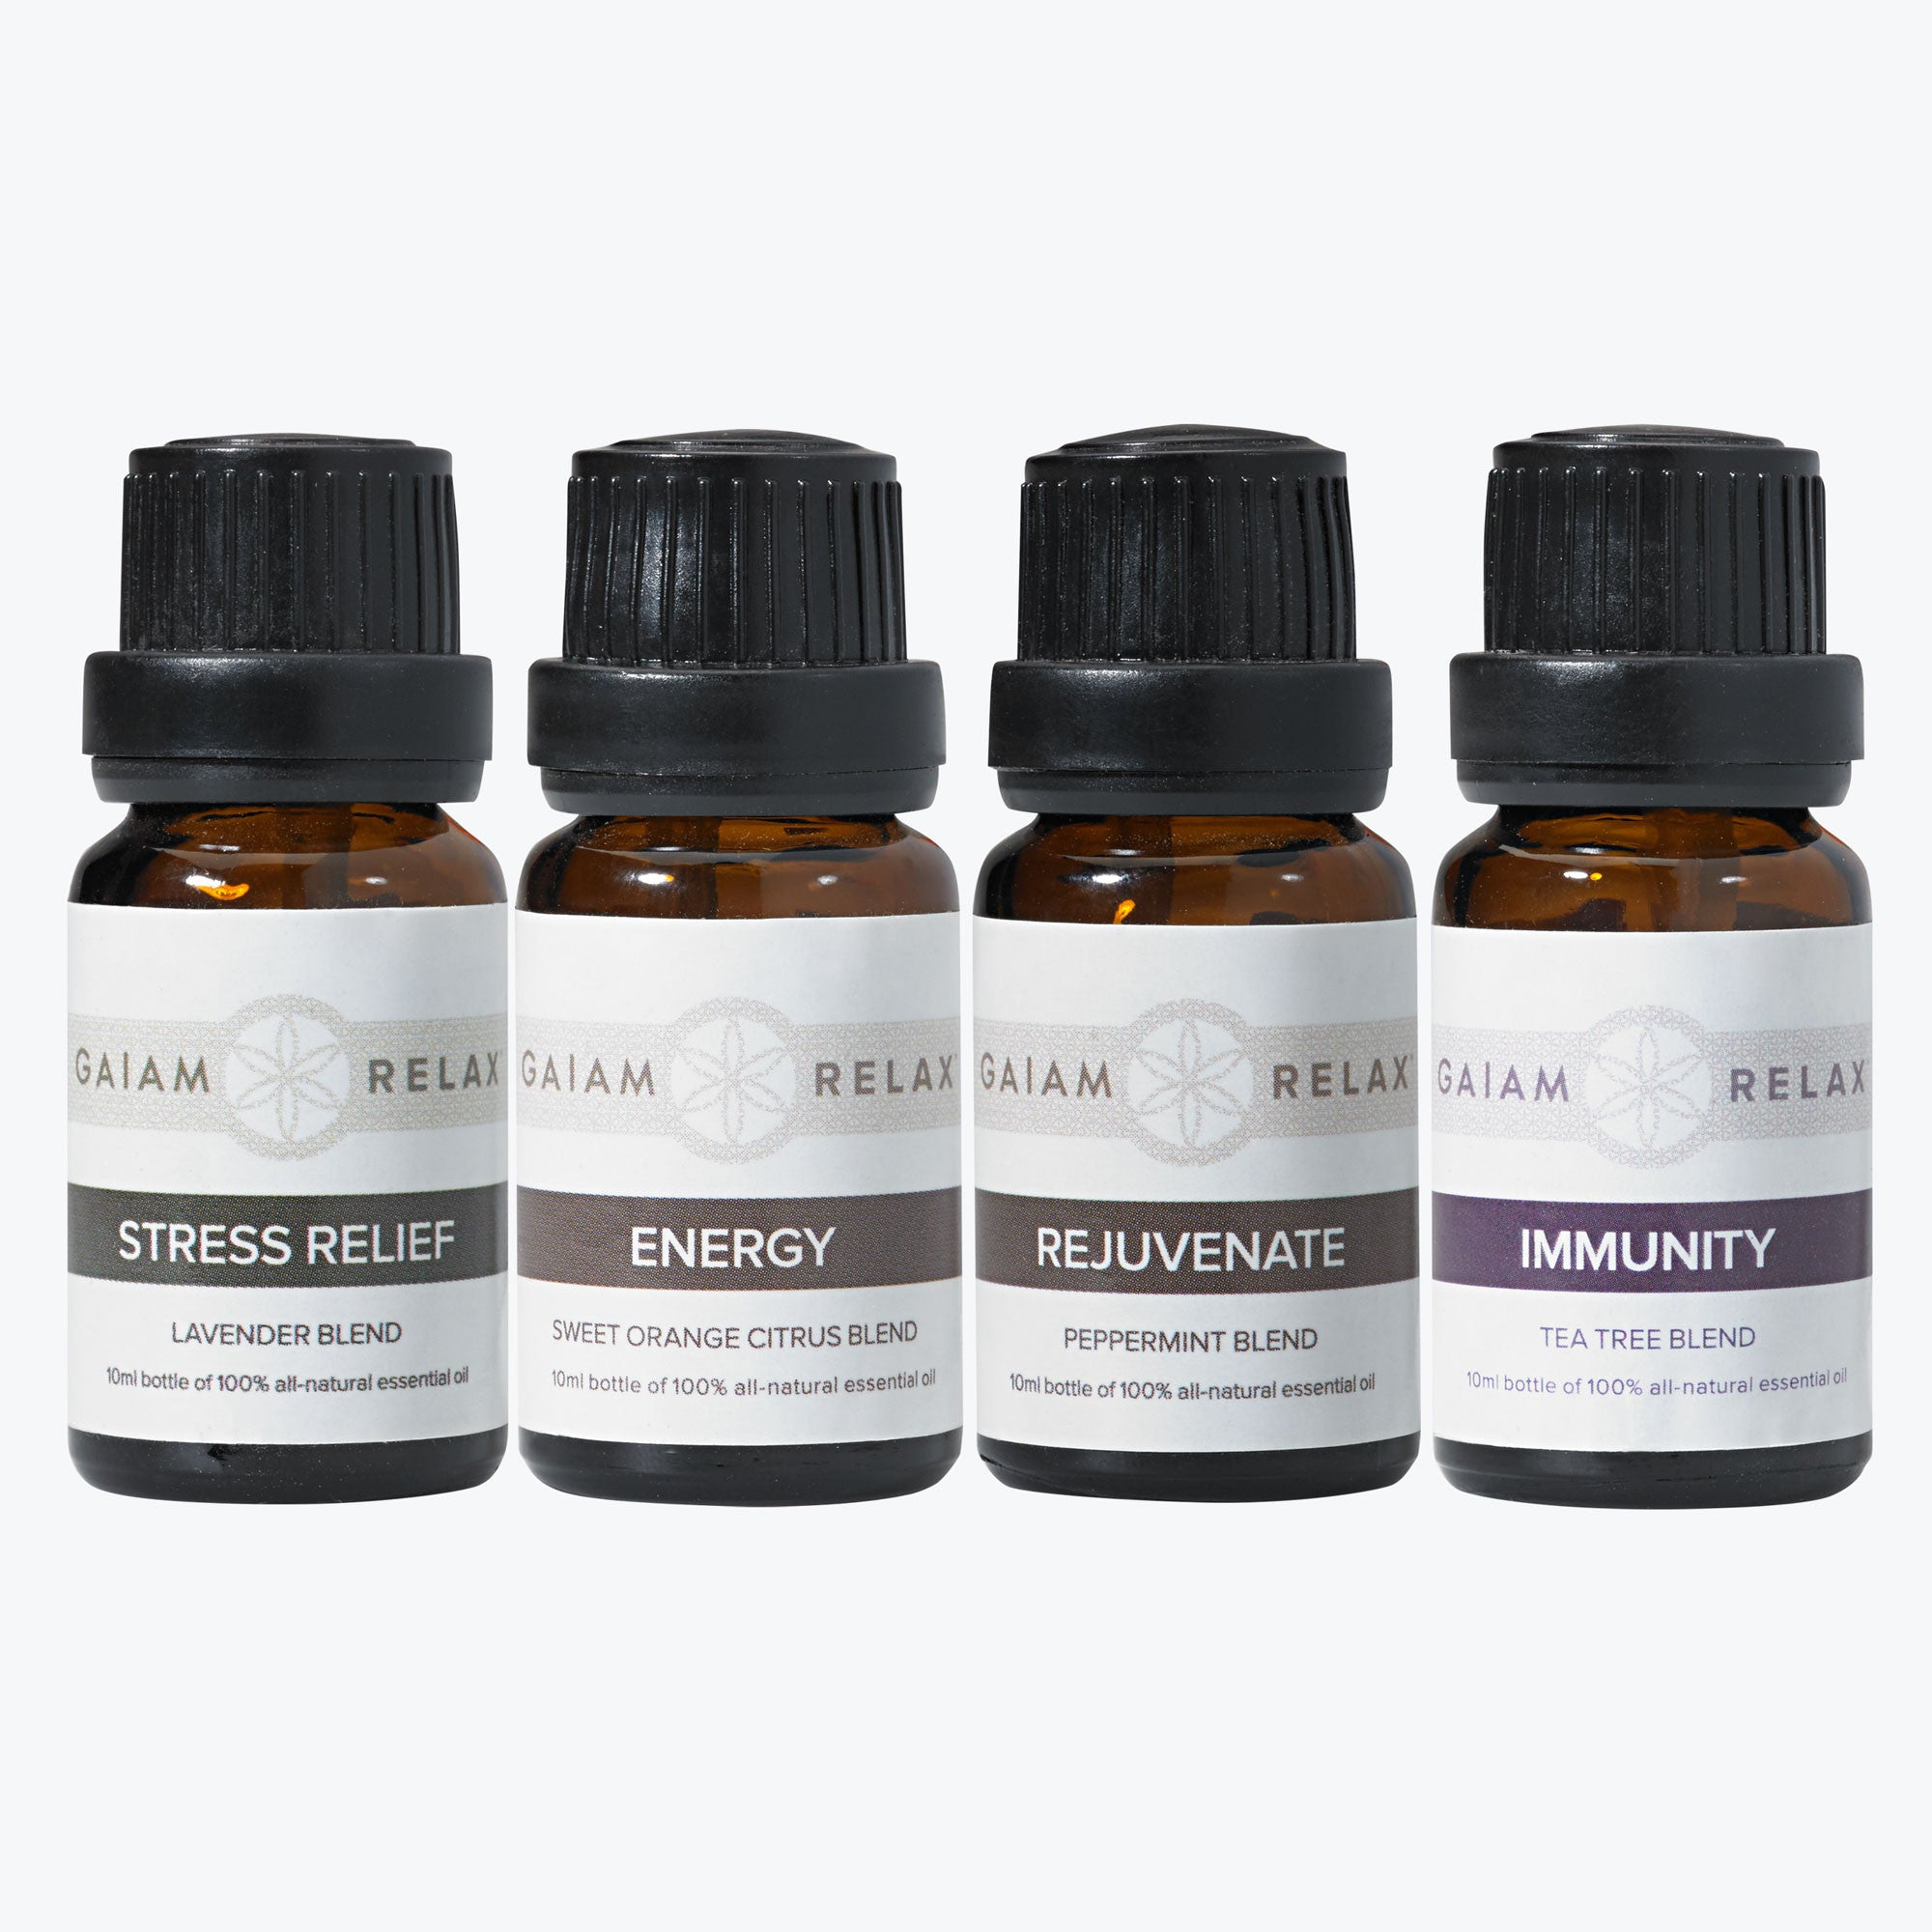 Gaiam Relax Essential Oils - 4 Pack